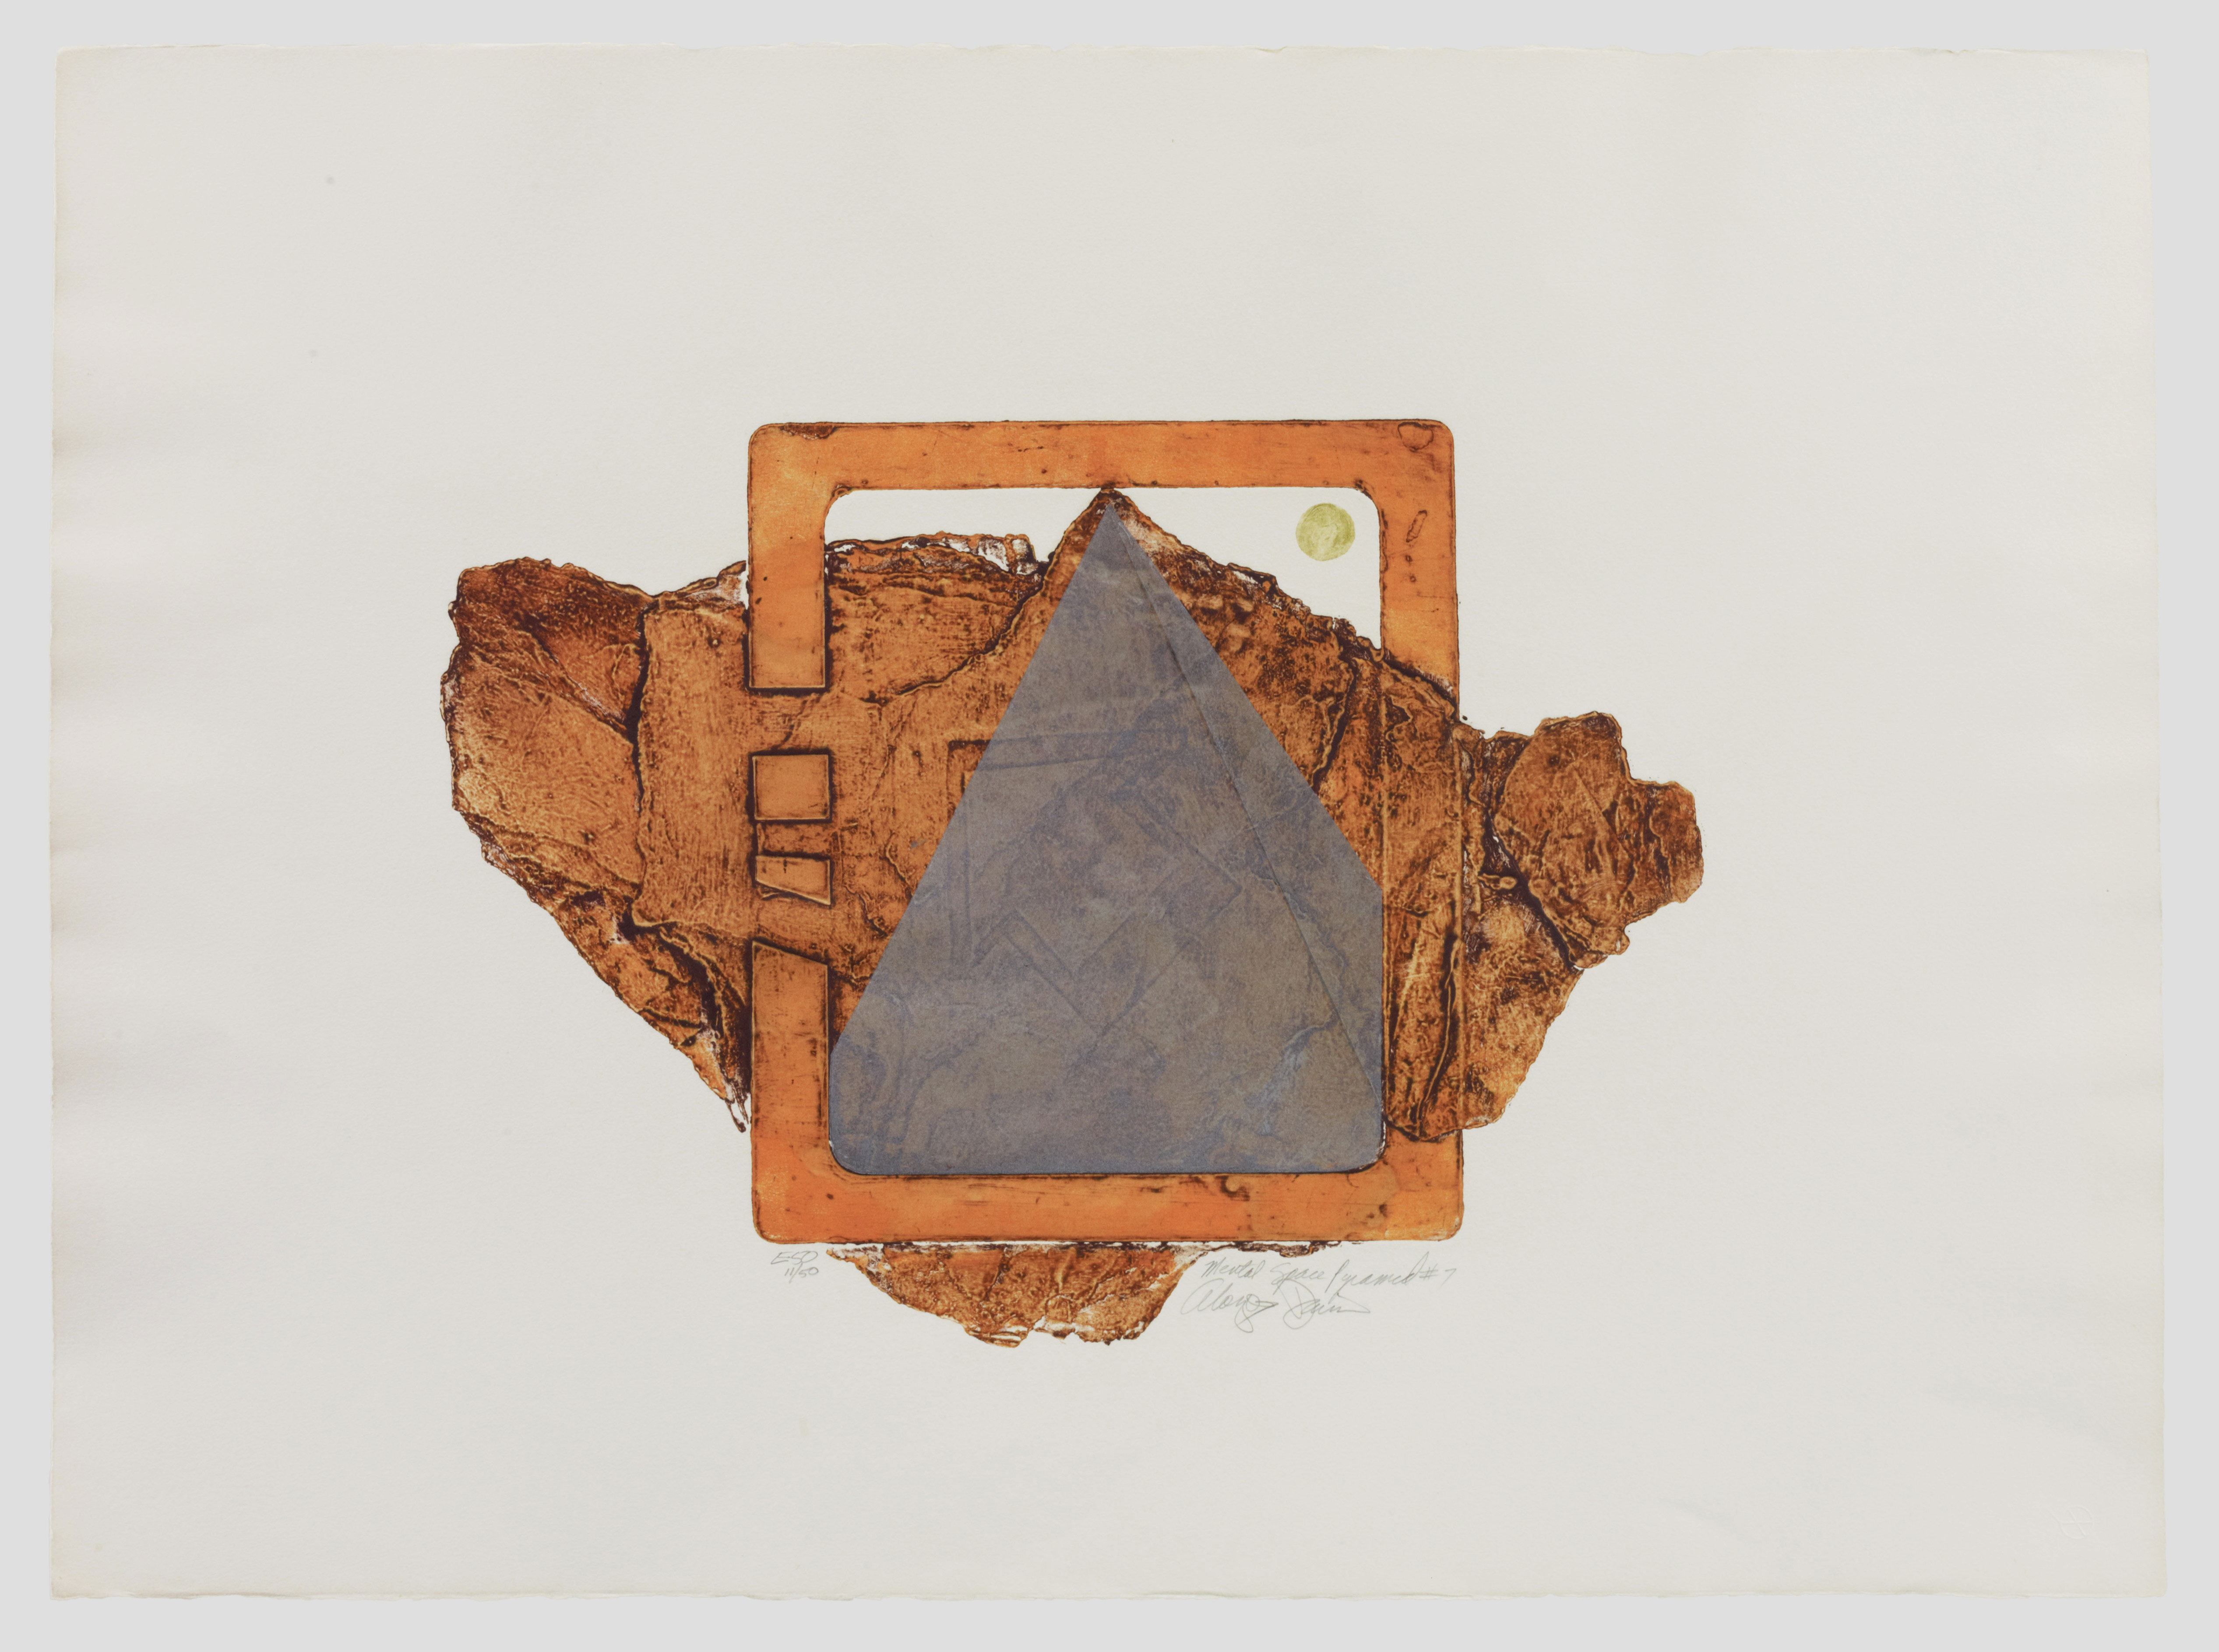 Pyramid #7, from the Mental Space Series, by Alonzo Davis, 1978-1979